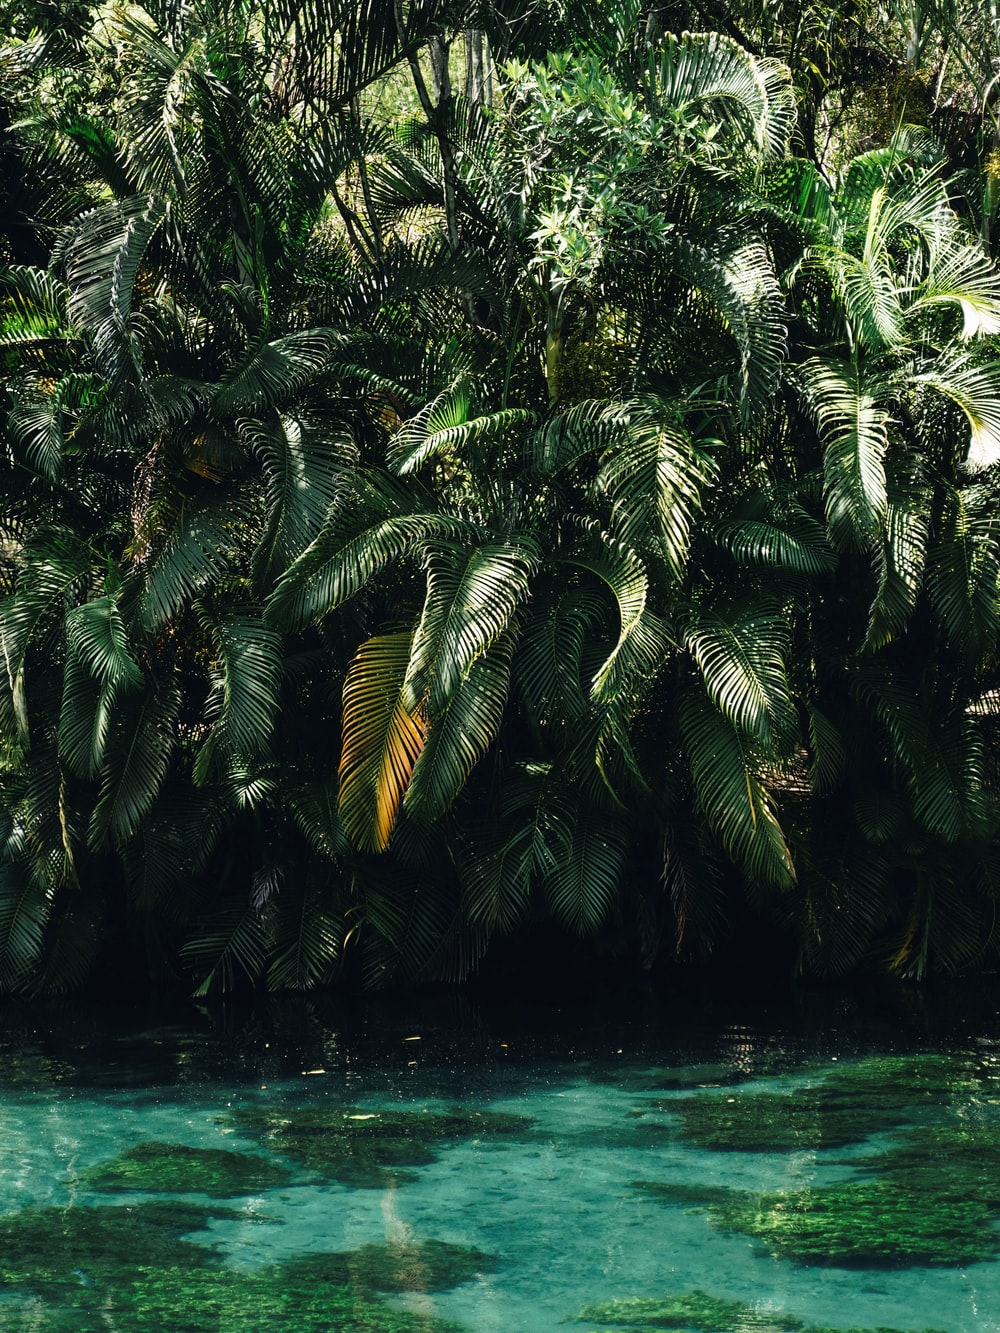 green palm tree near body of water during daytime